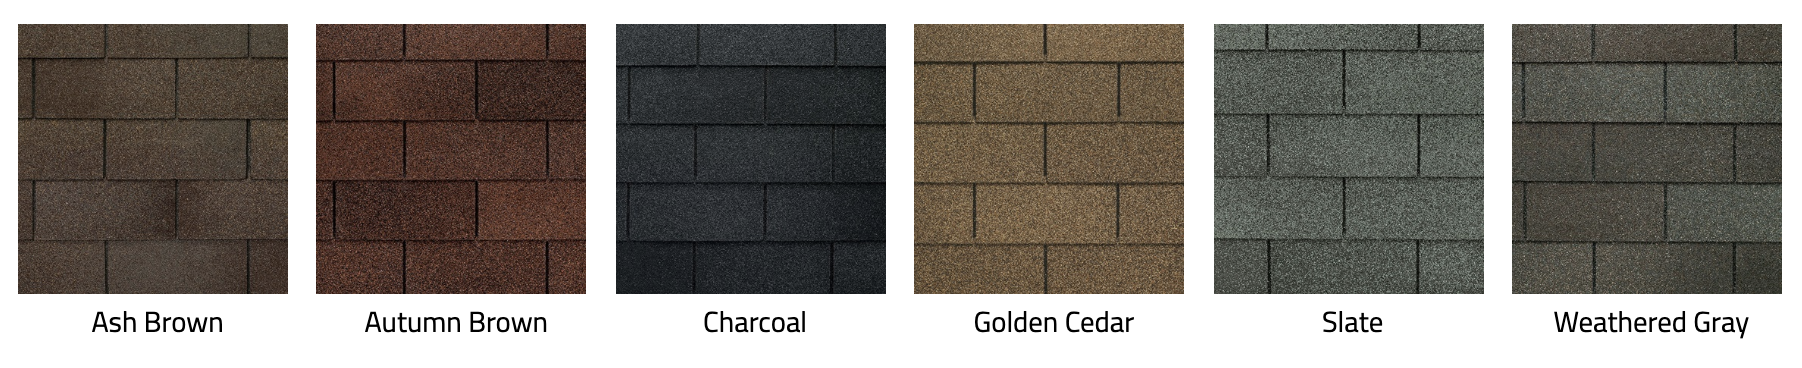 ash brown, autumn brown, charcoal, golden cedar, slate, and weathered gray shingles